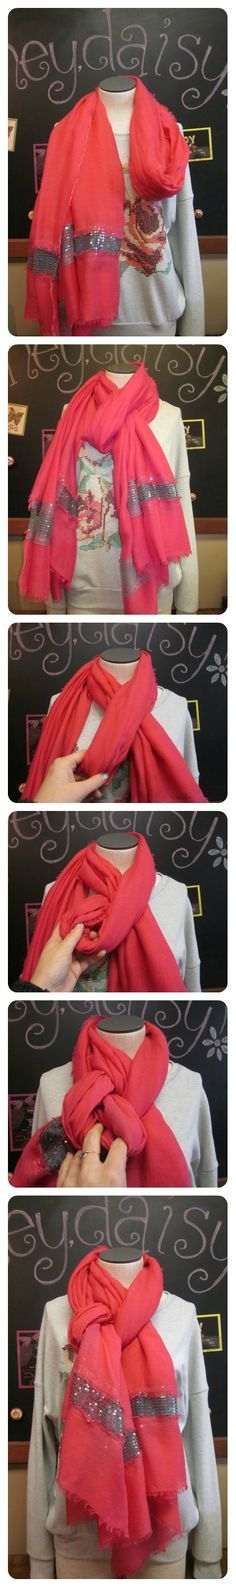 Fold scarf in half, and wrap around neck.  Thread one end through loop.  Give the loop a half twist and thread the other end through.